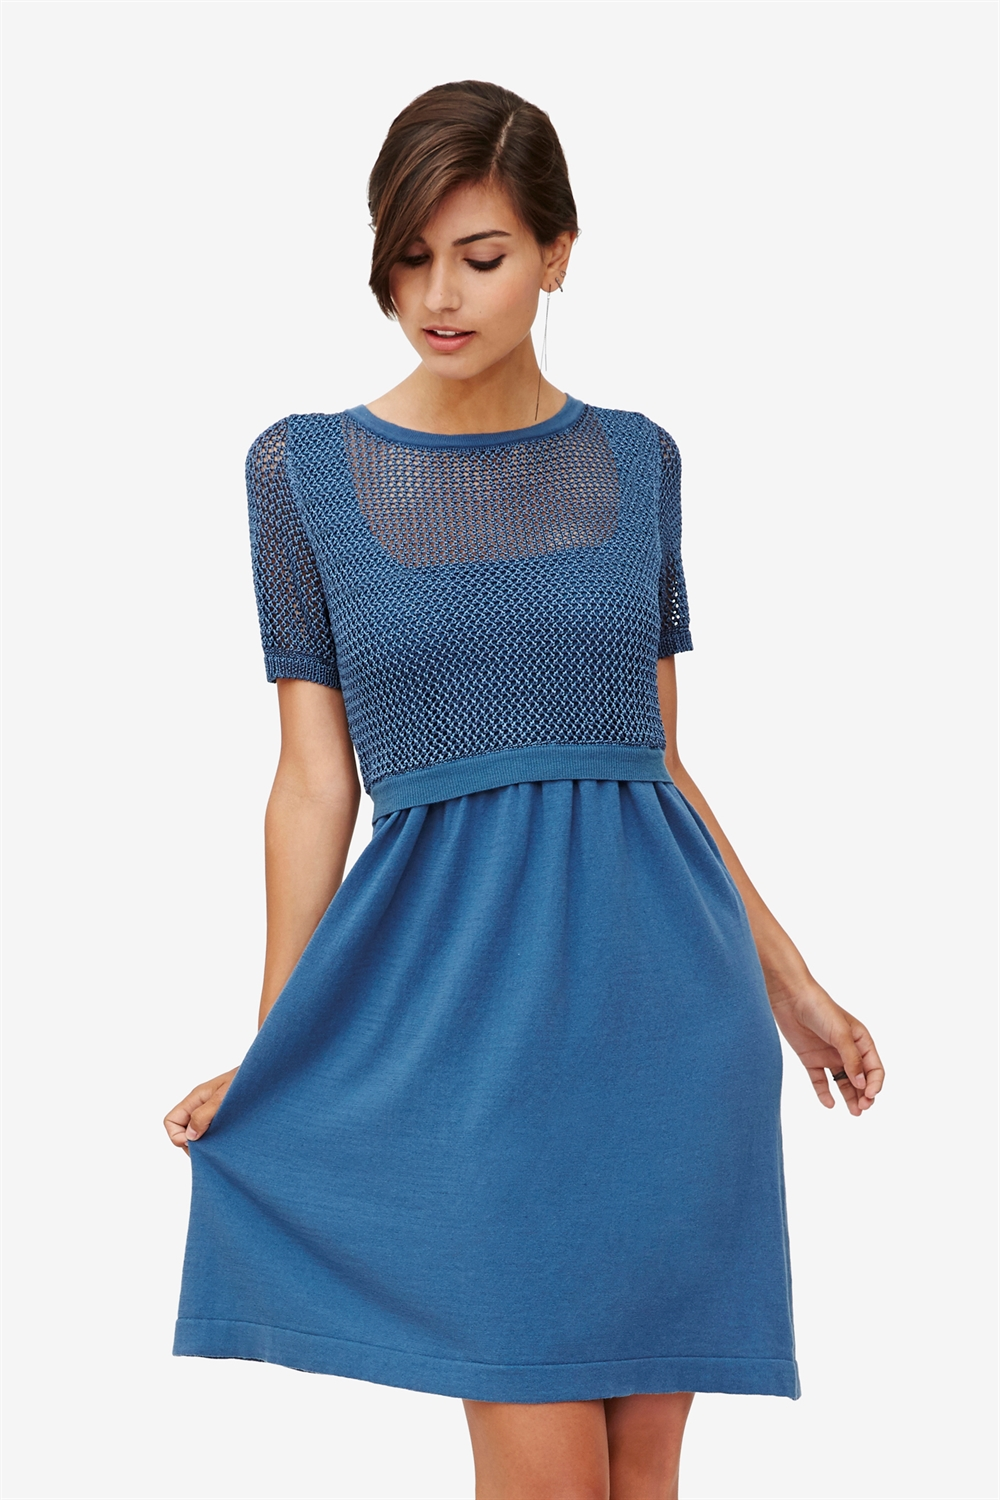 Blue nursing dress with knit top